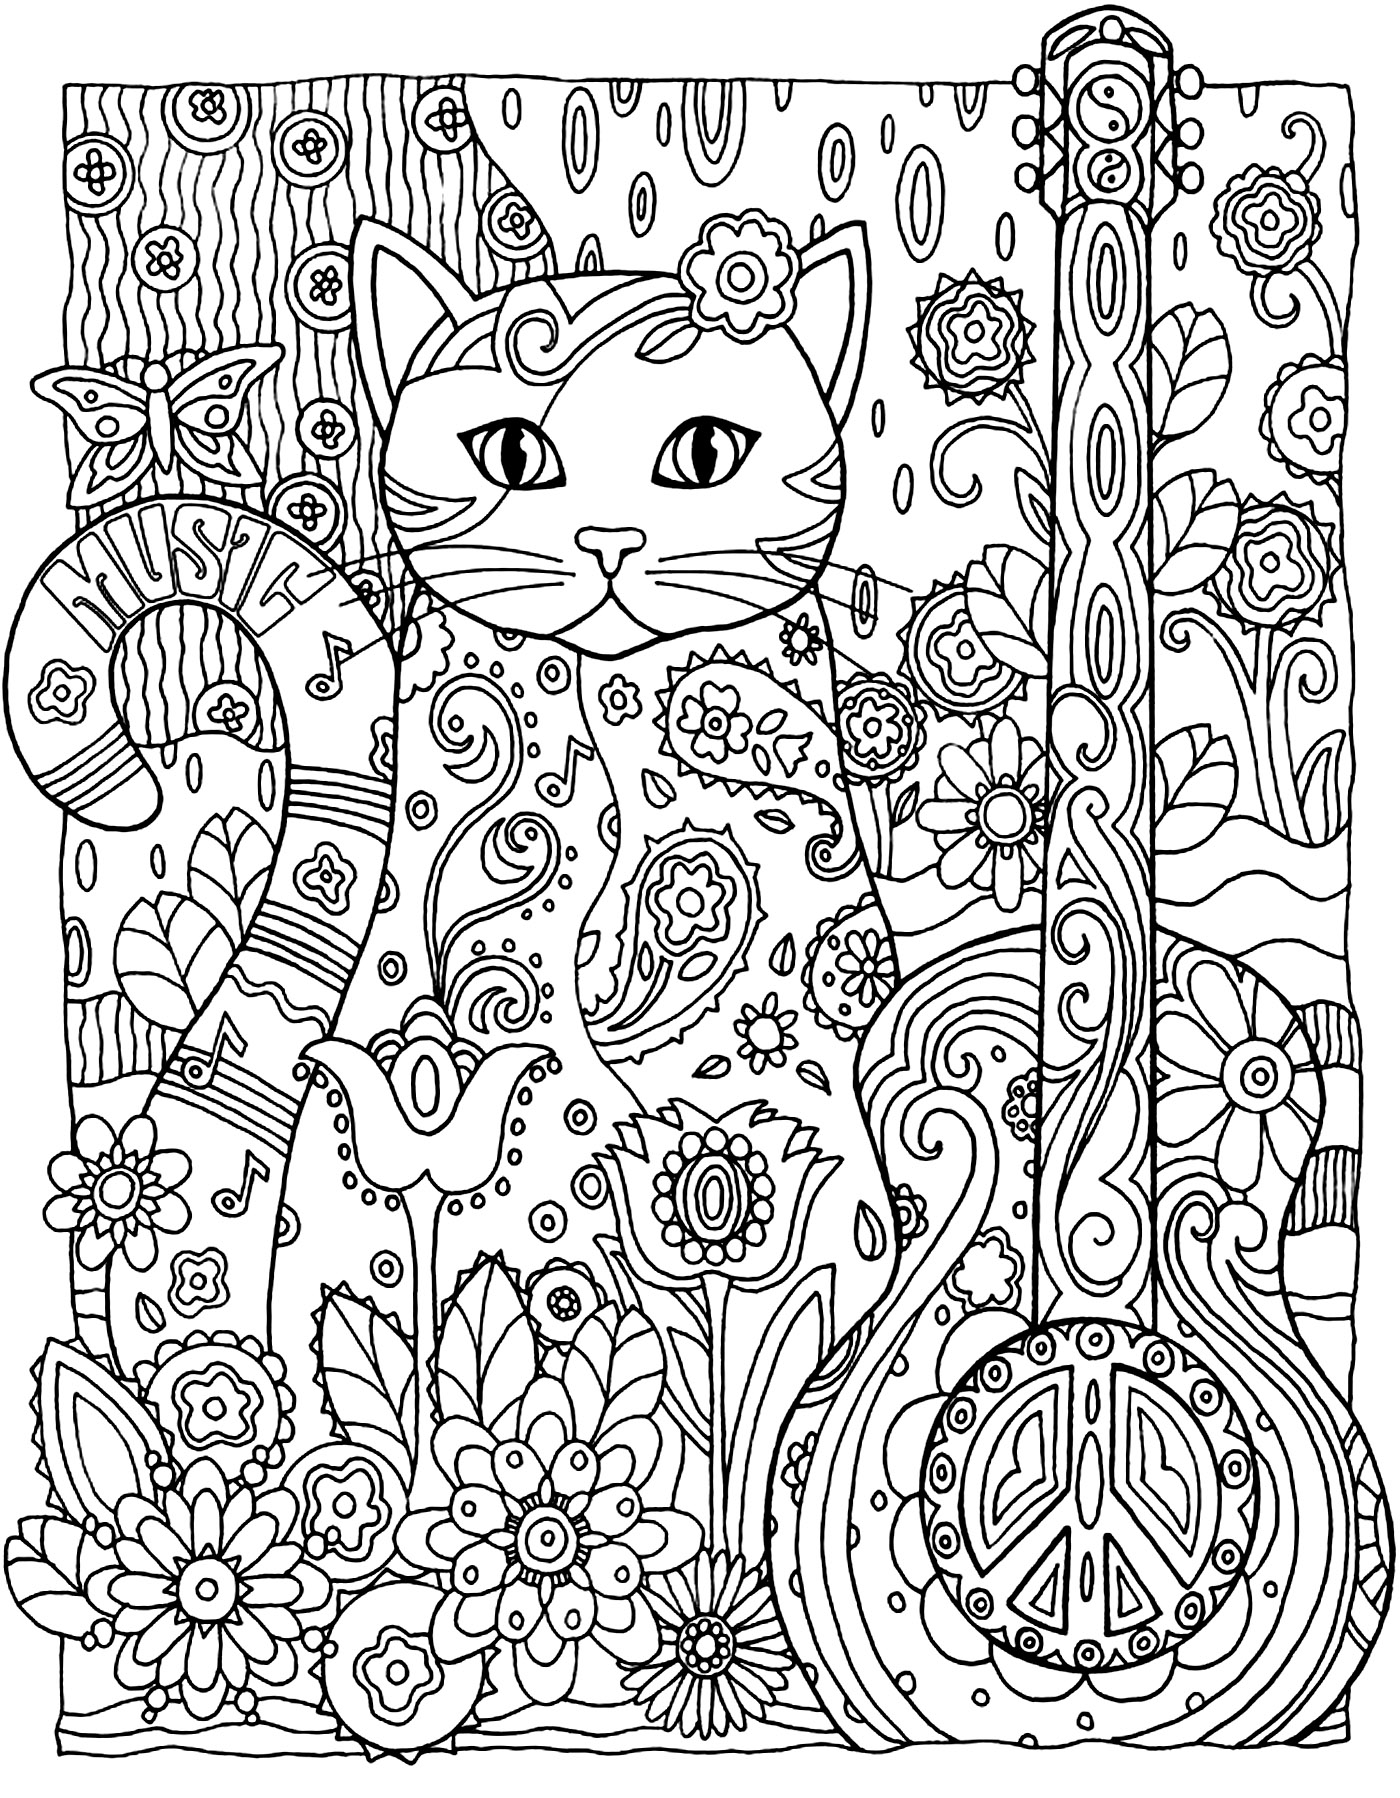 Cat Guitar Animals Coloring Pages For Adults Justcolor